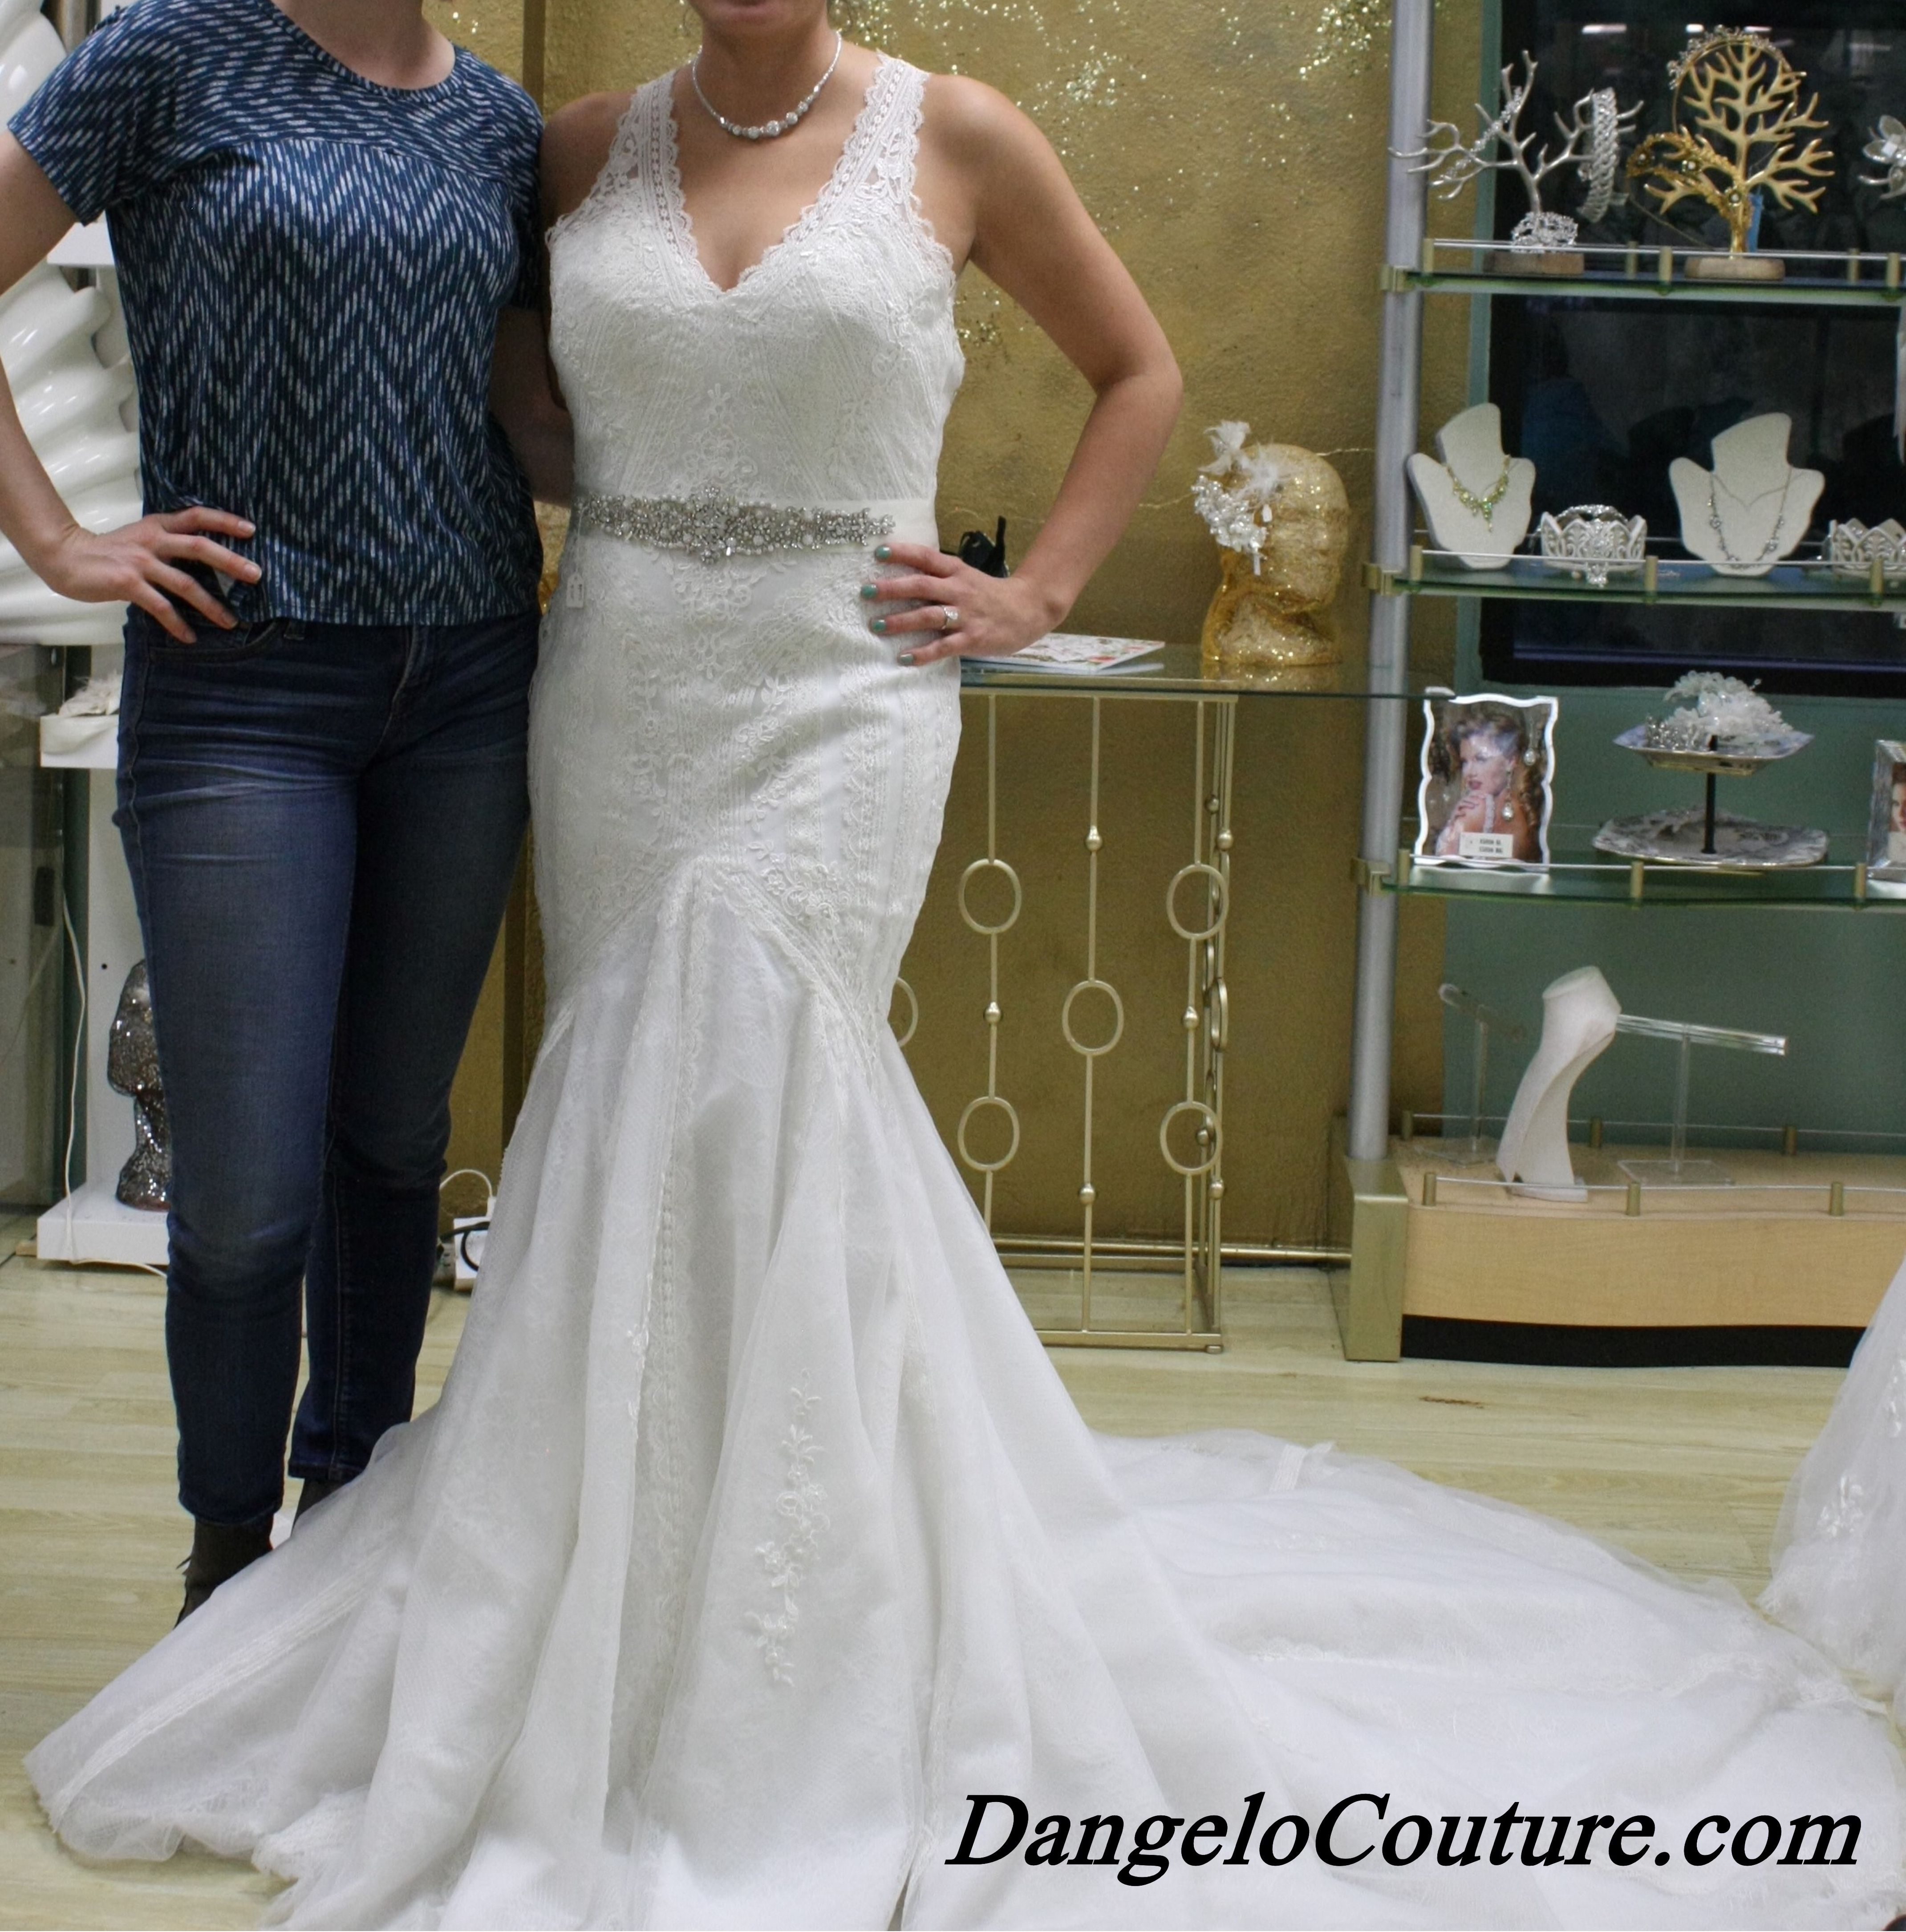 Wedding Dresses At Du0027Angelo Couture Bridal In San Diego, California.